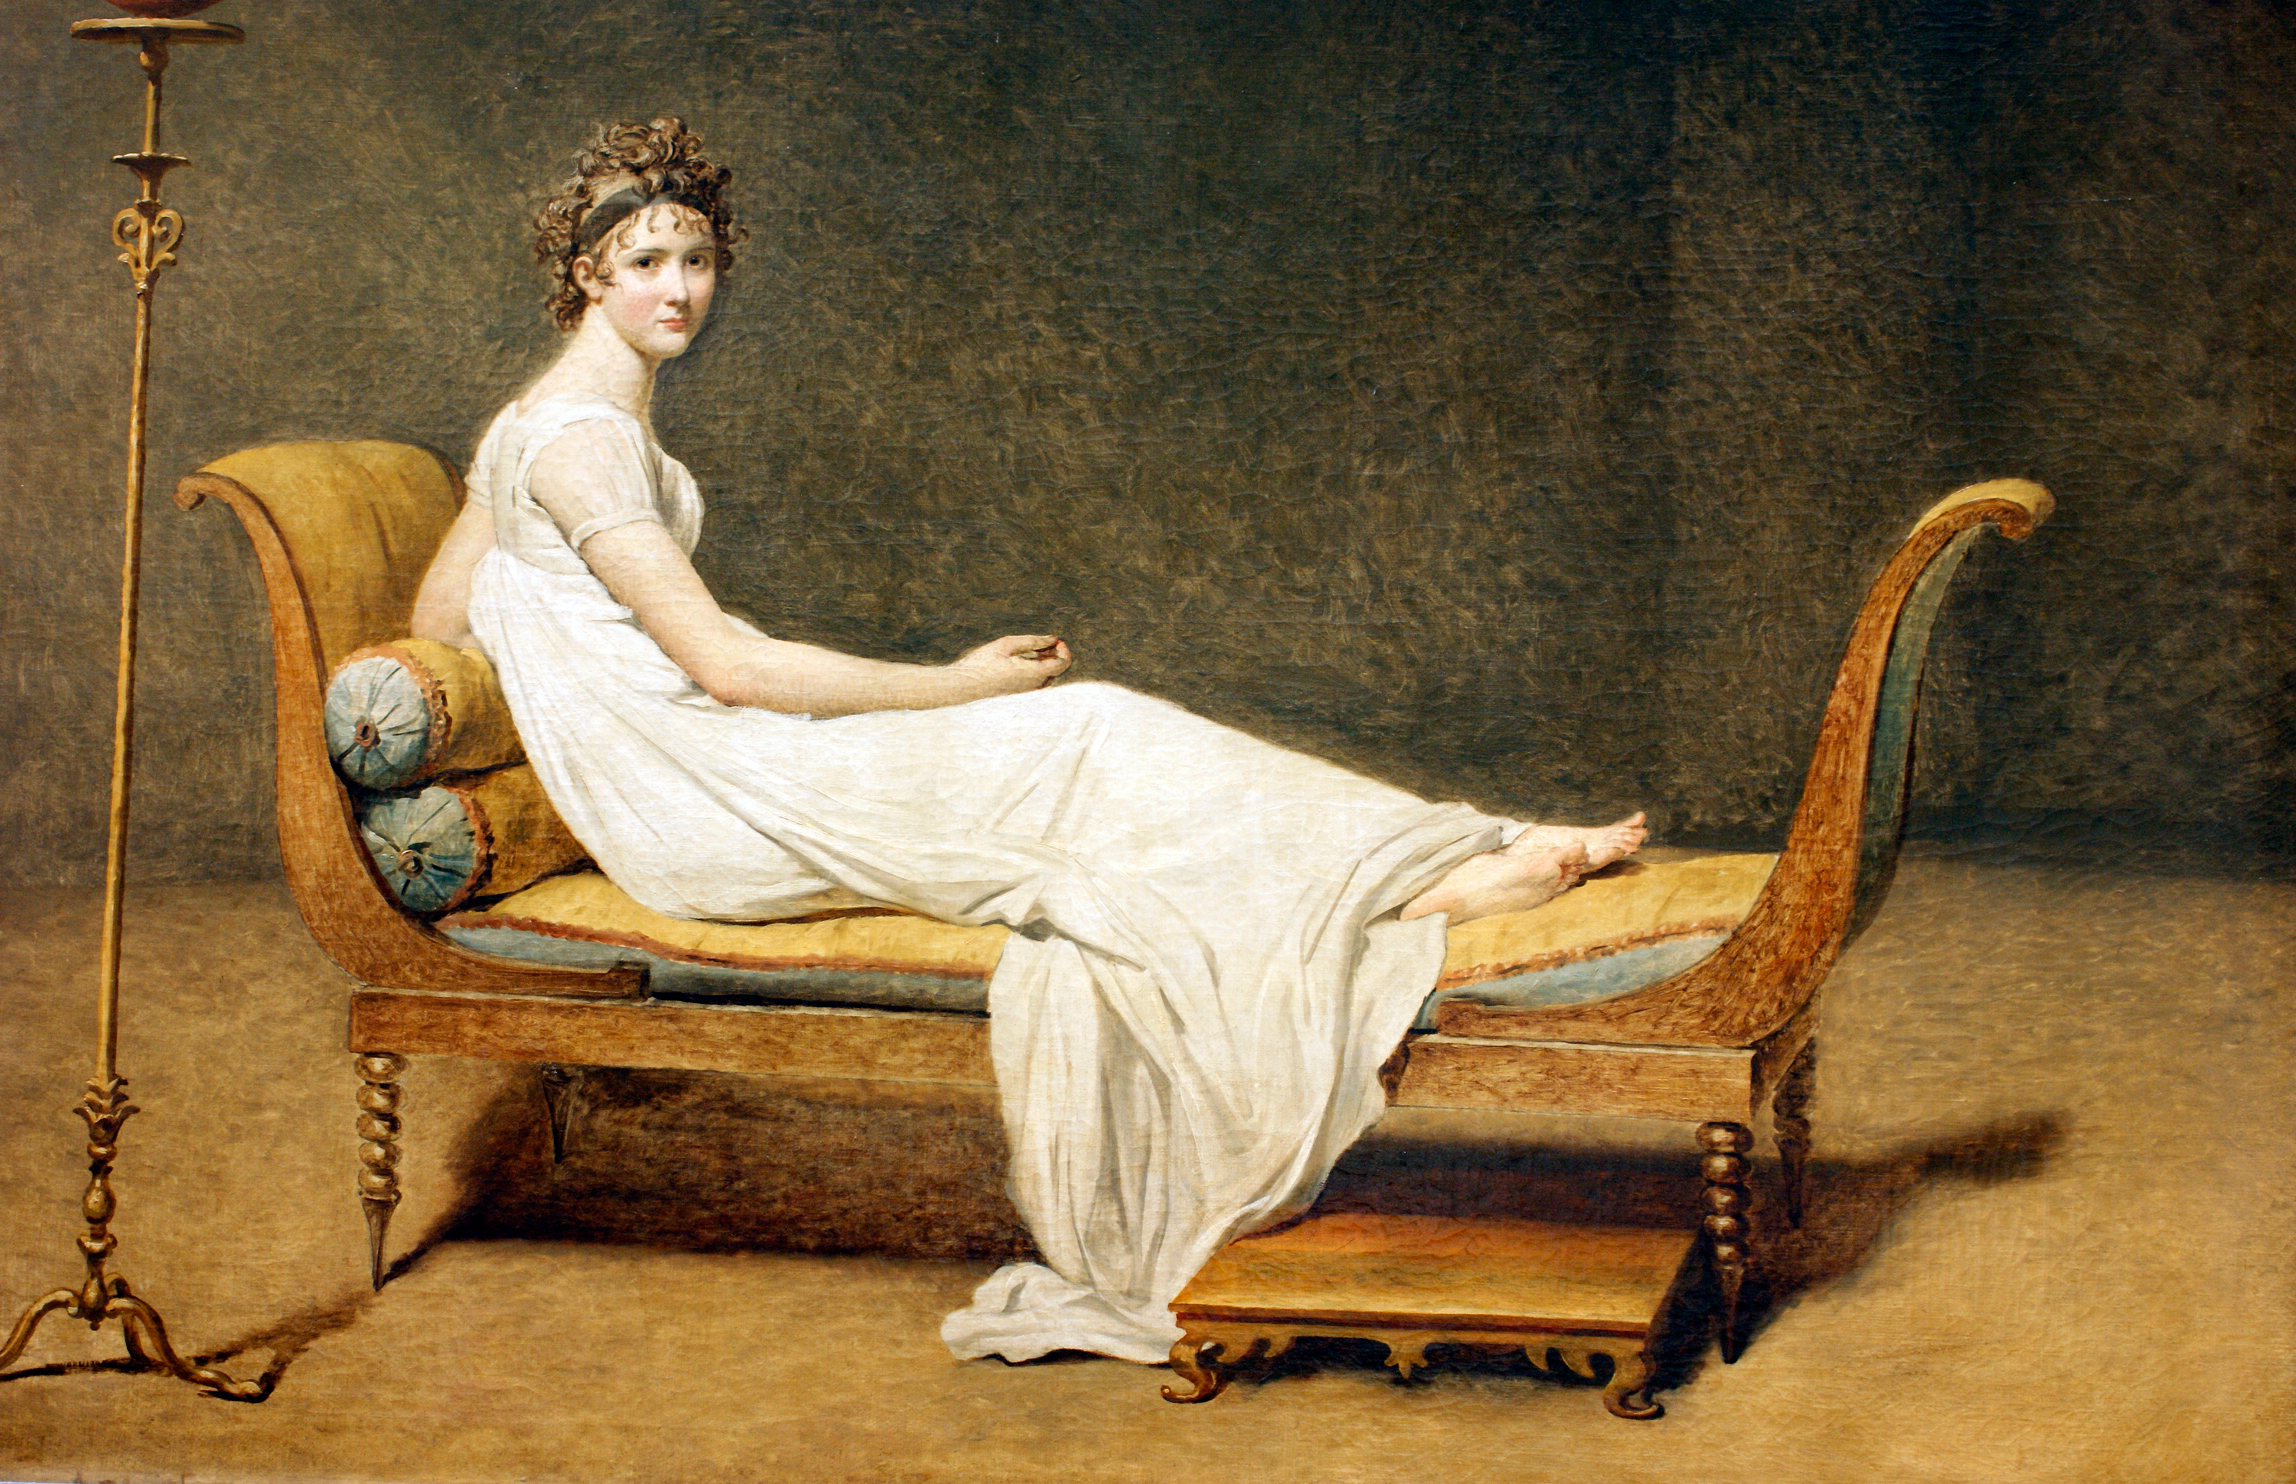 https://upload.wikimedia.org/wikipedia/commons/0/03/Madame_R%C3%A9camier_by_Jacques-Louis_David.jpg